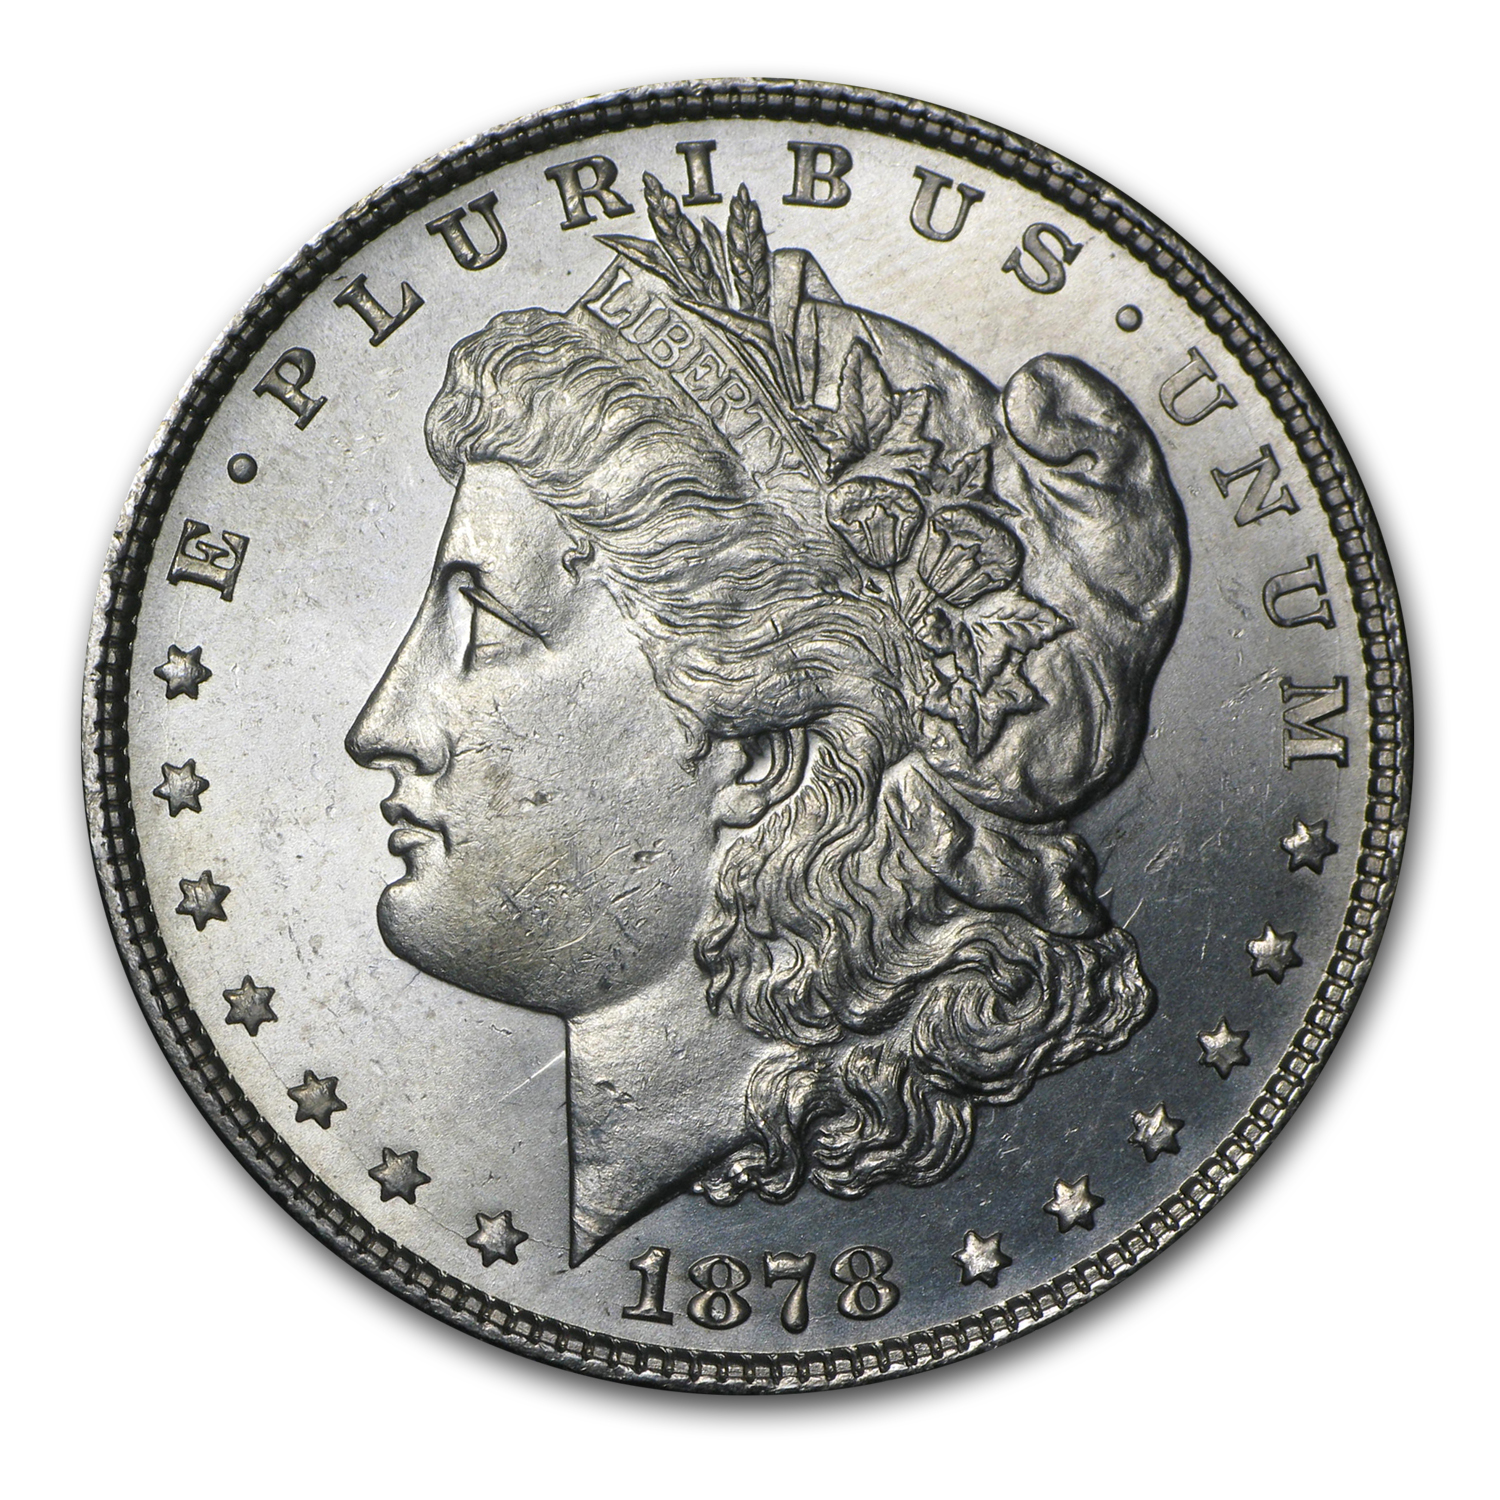 1878 Morgan Dollar 7/8 Tailfeathers BU (Strong)